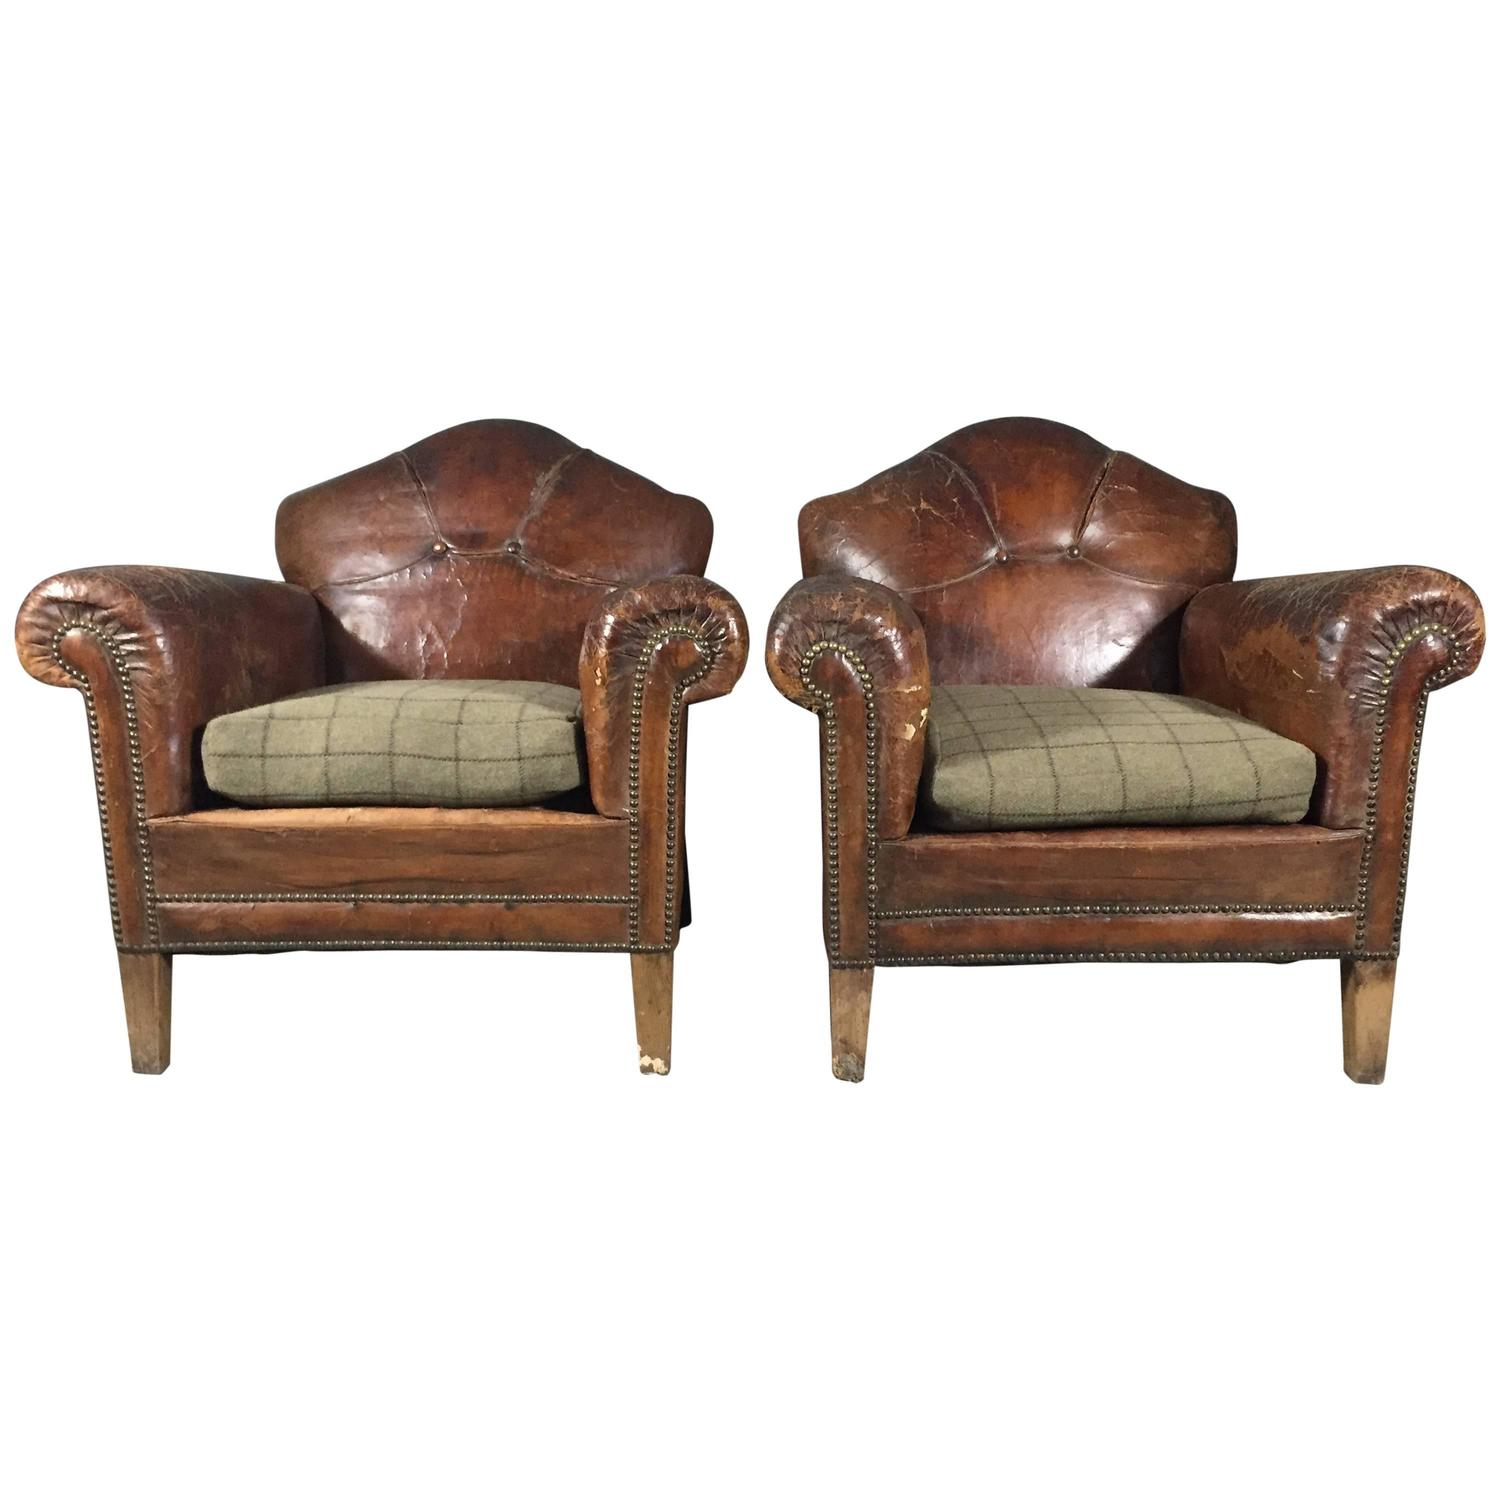 Pair of English Art Deco Leather and Hobnail Club Chairs circa